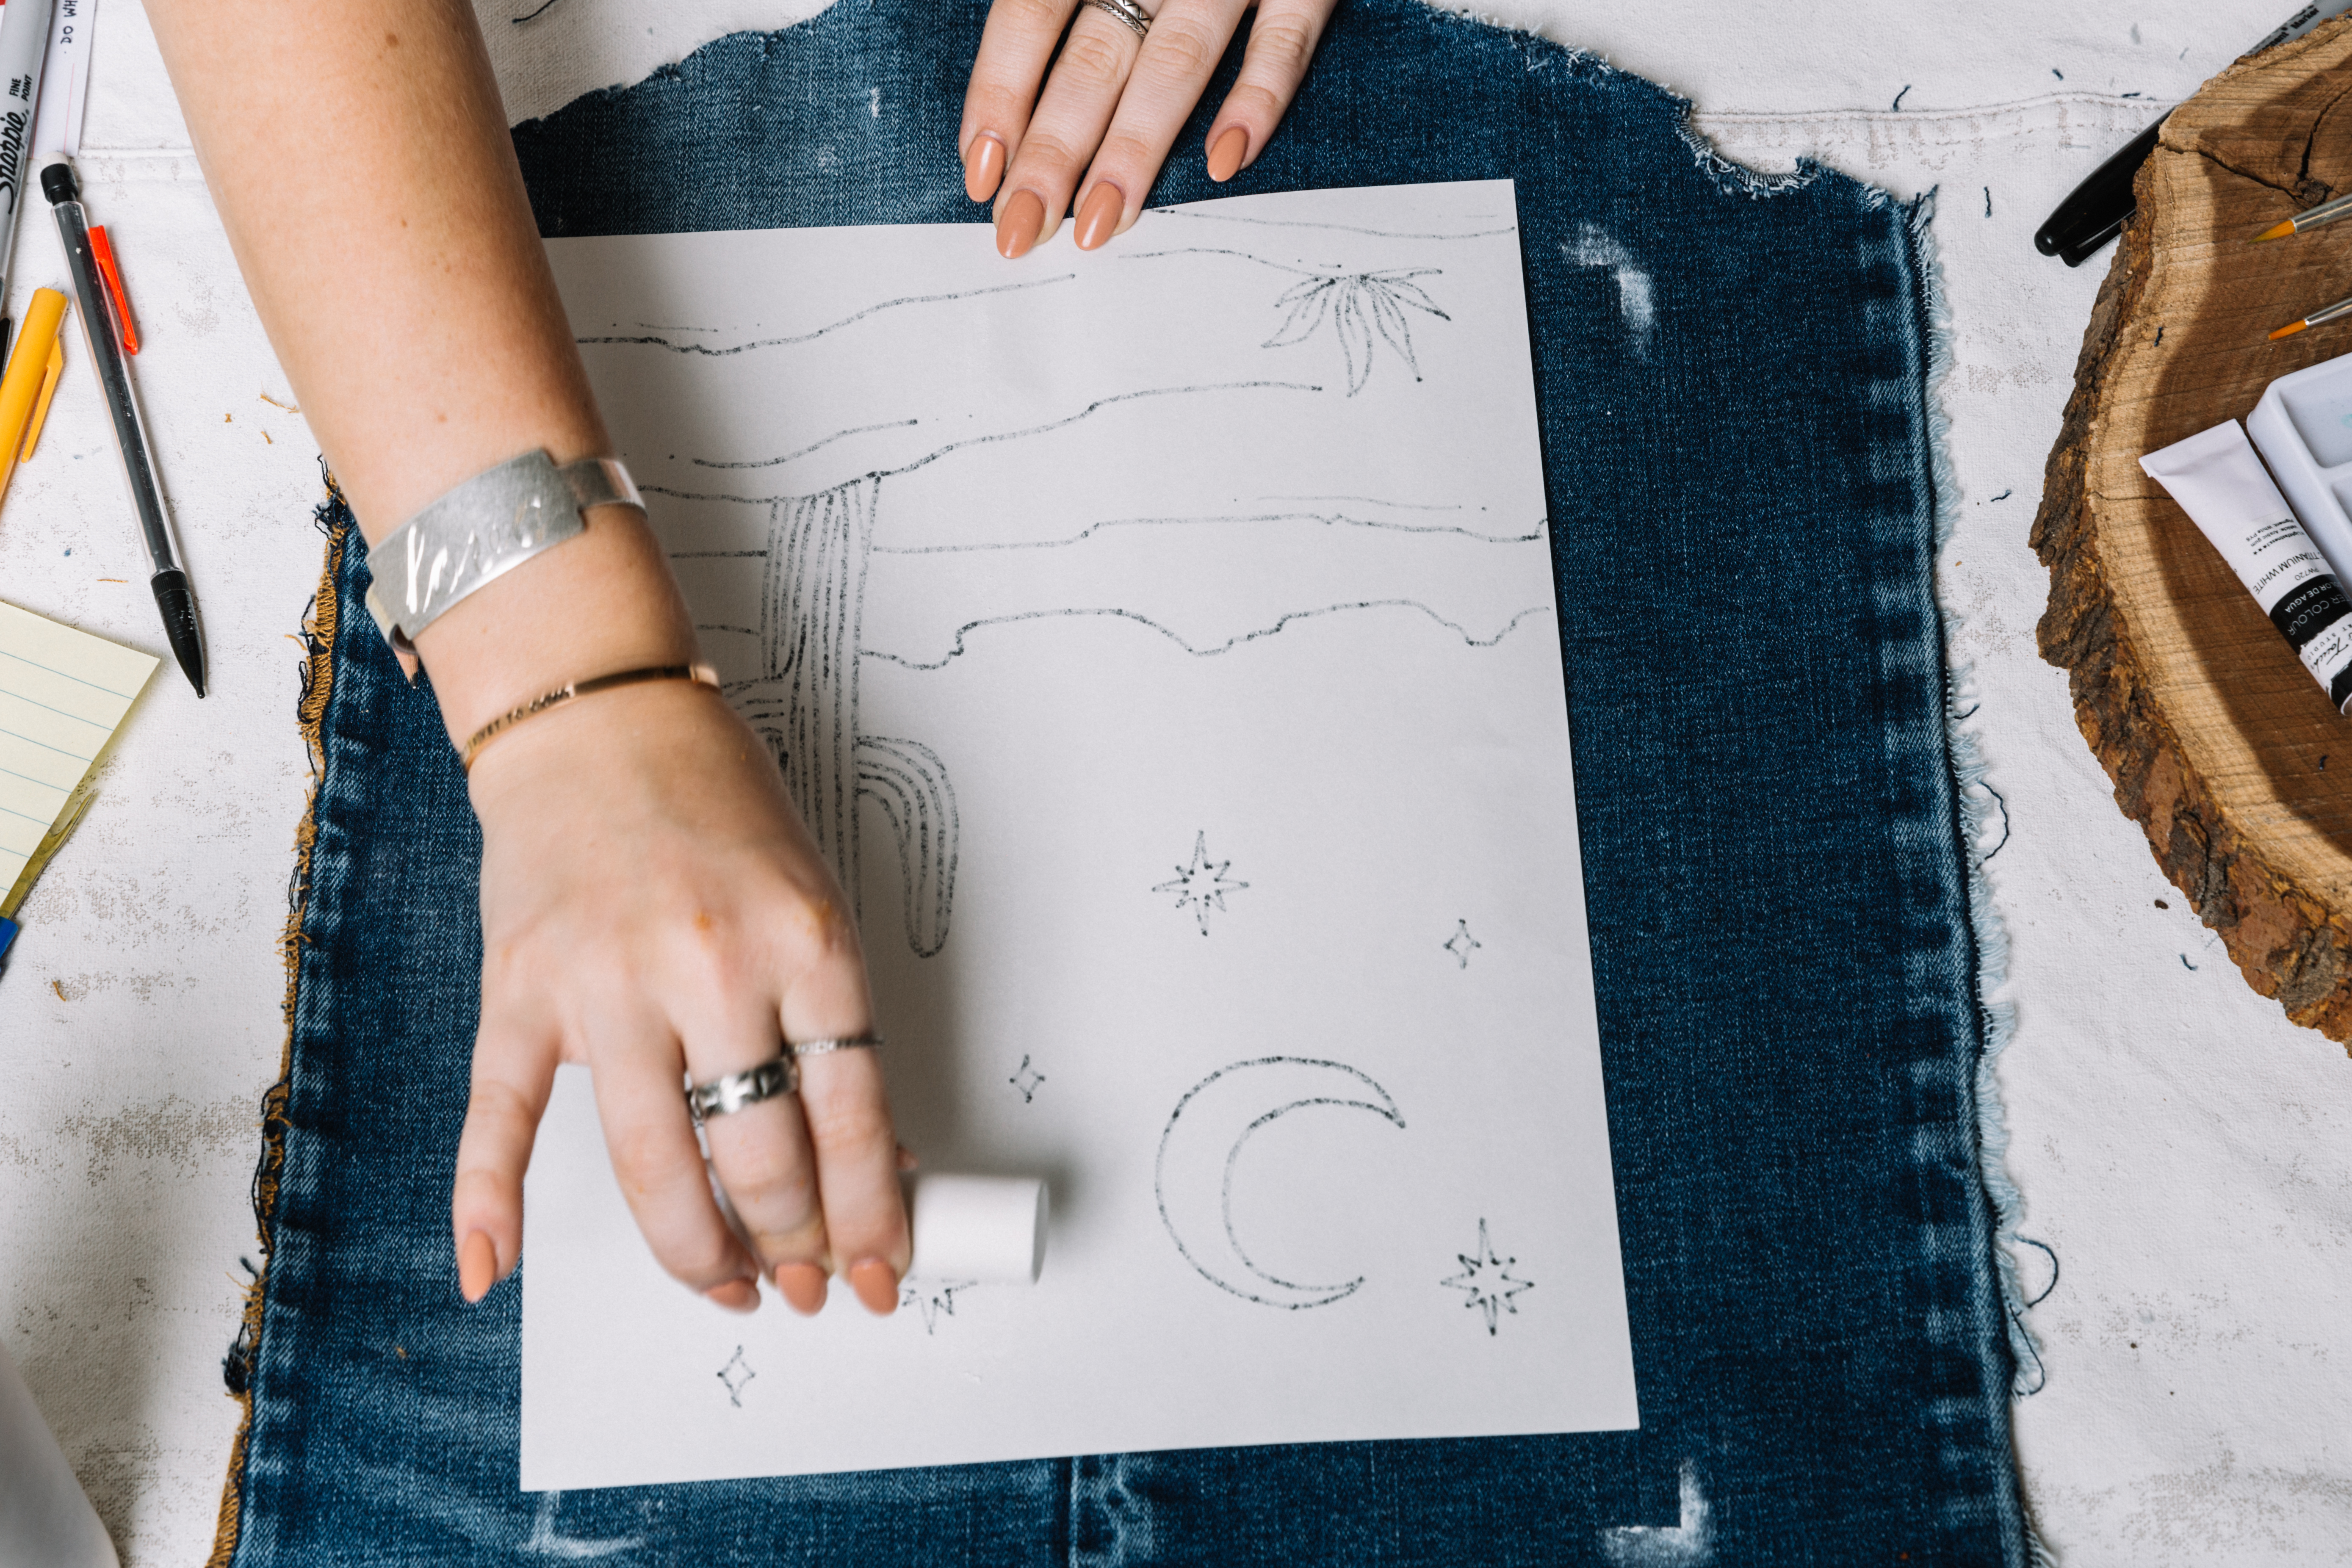 Tracing the design on a denim tapestry.